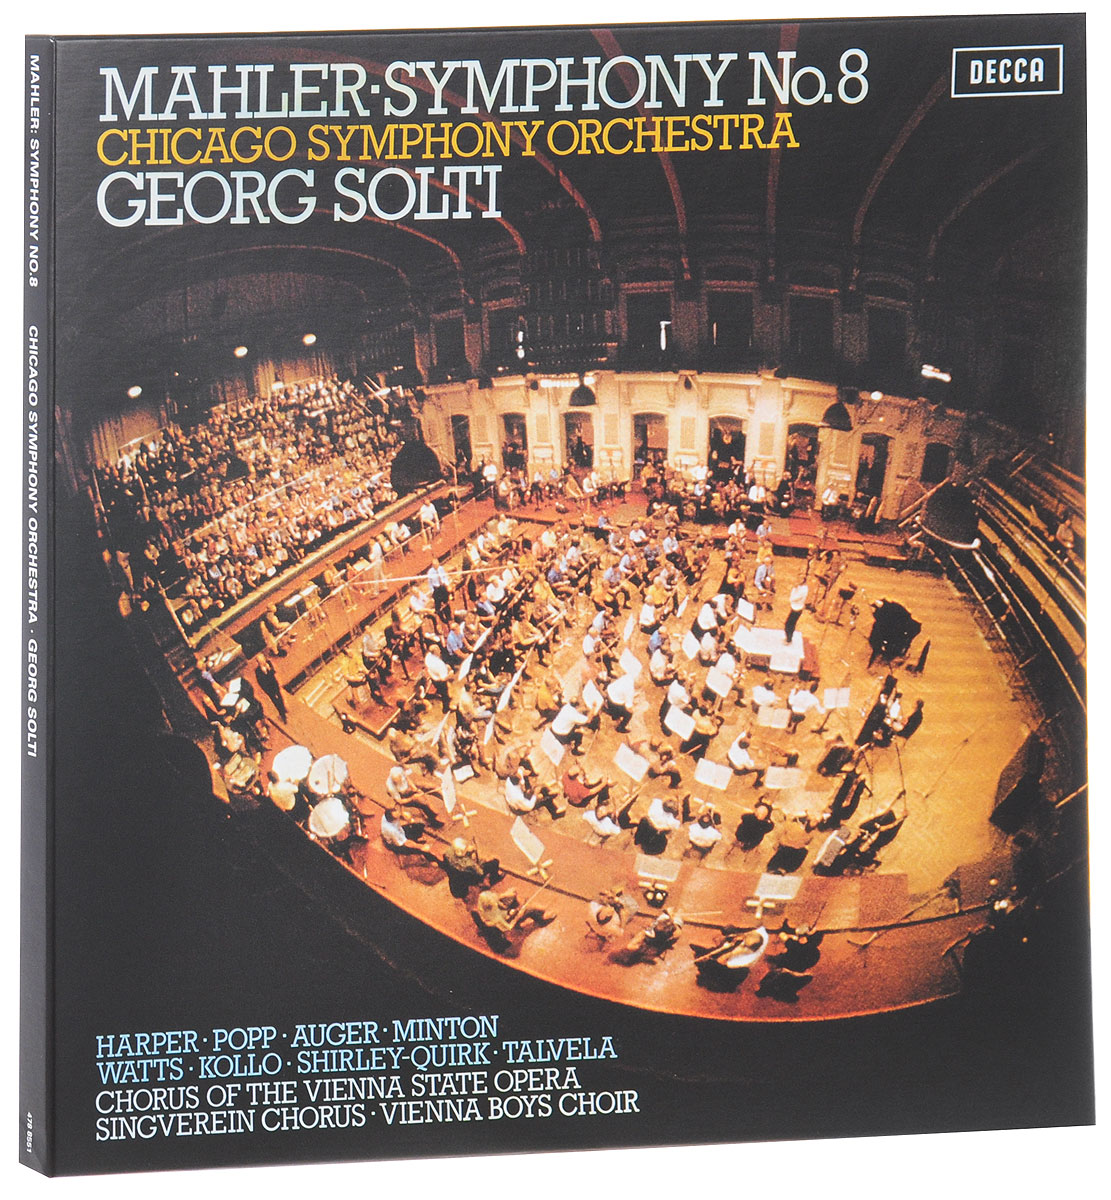 Георг Шолти,Chicago Symphony Orchestra Sir Georg Solti, Chicago Symphony Orchestra. Mahler. Symphony No. 8 (2 LP) георг шолти chicago symphony orchestra chicago symphony chorus sir georg solti chicago symphony orchestra beethoven the symphonies 7 cd